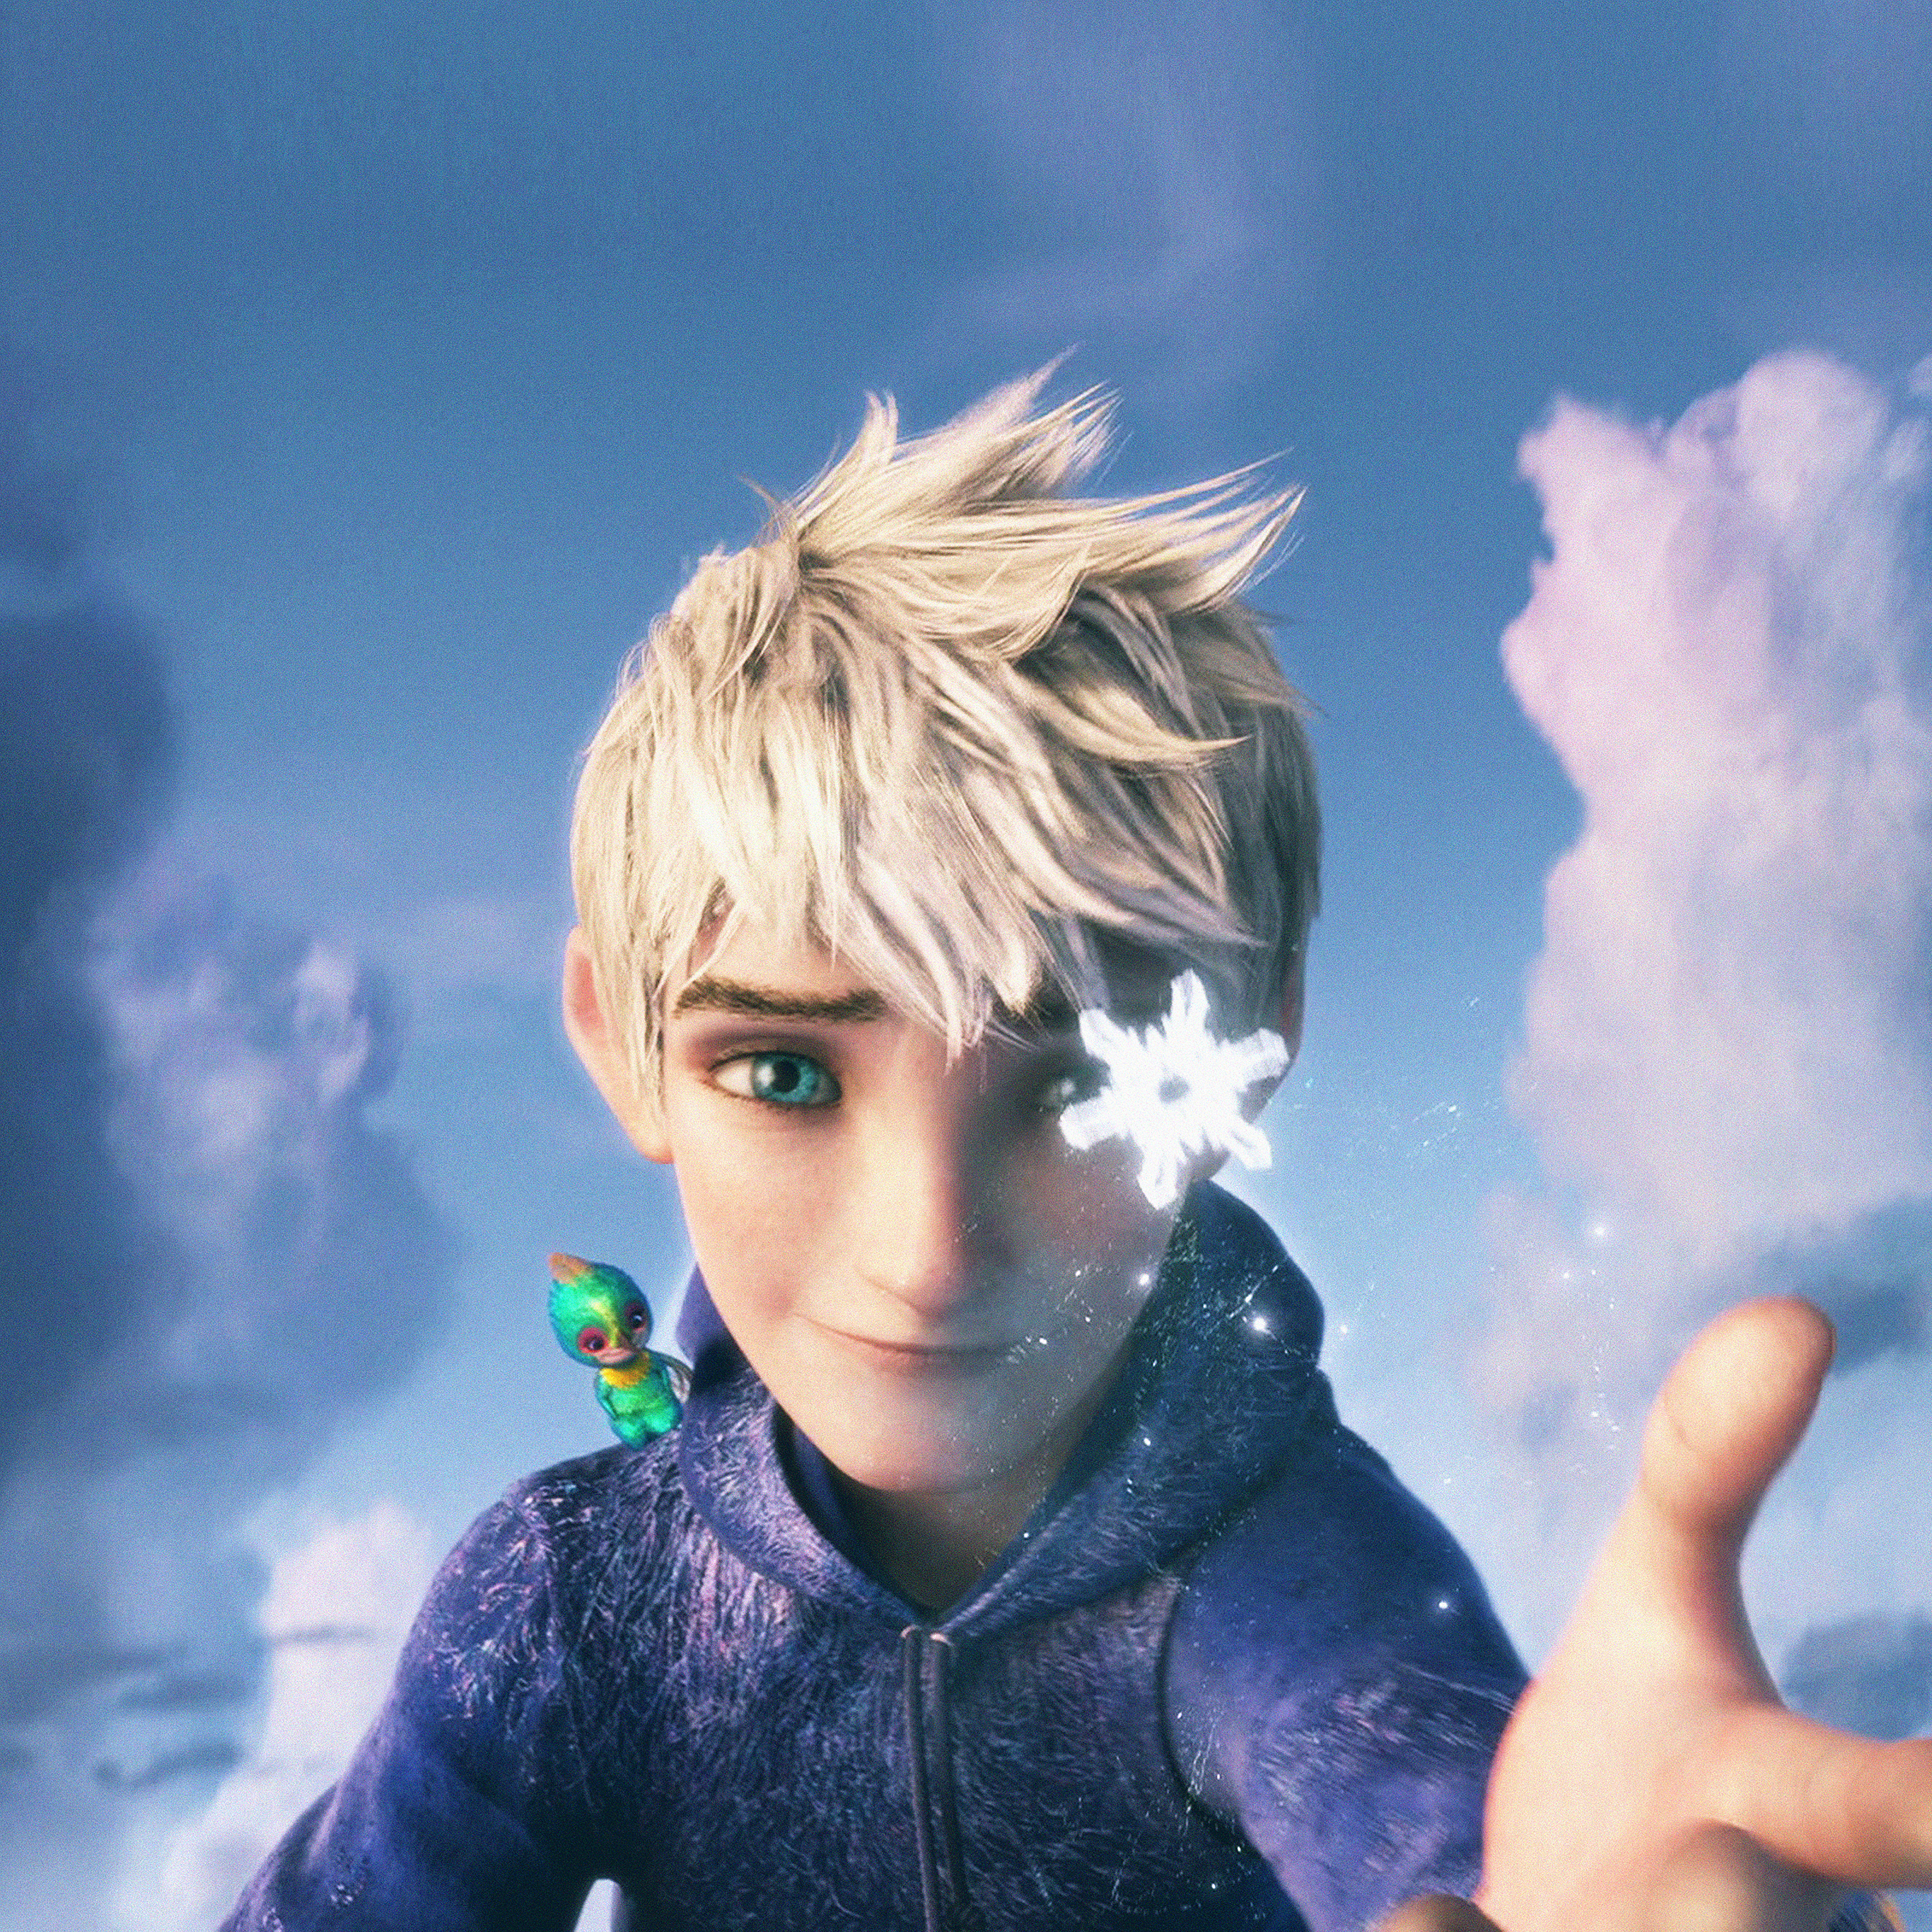 Ac71 Wallpaper Jack Frost Rise Of The Guardians Illust Papers Co